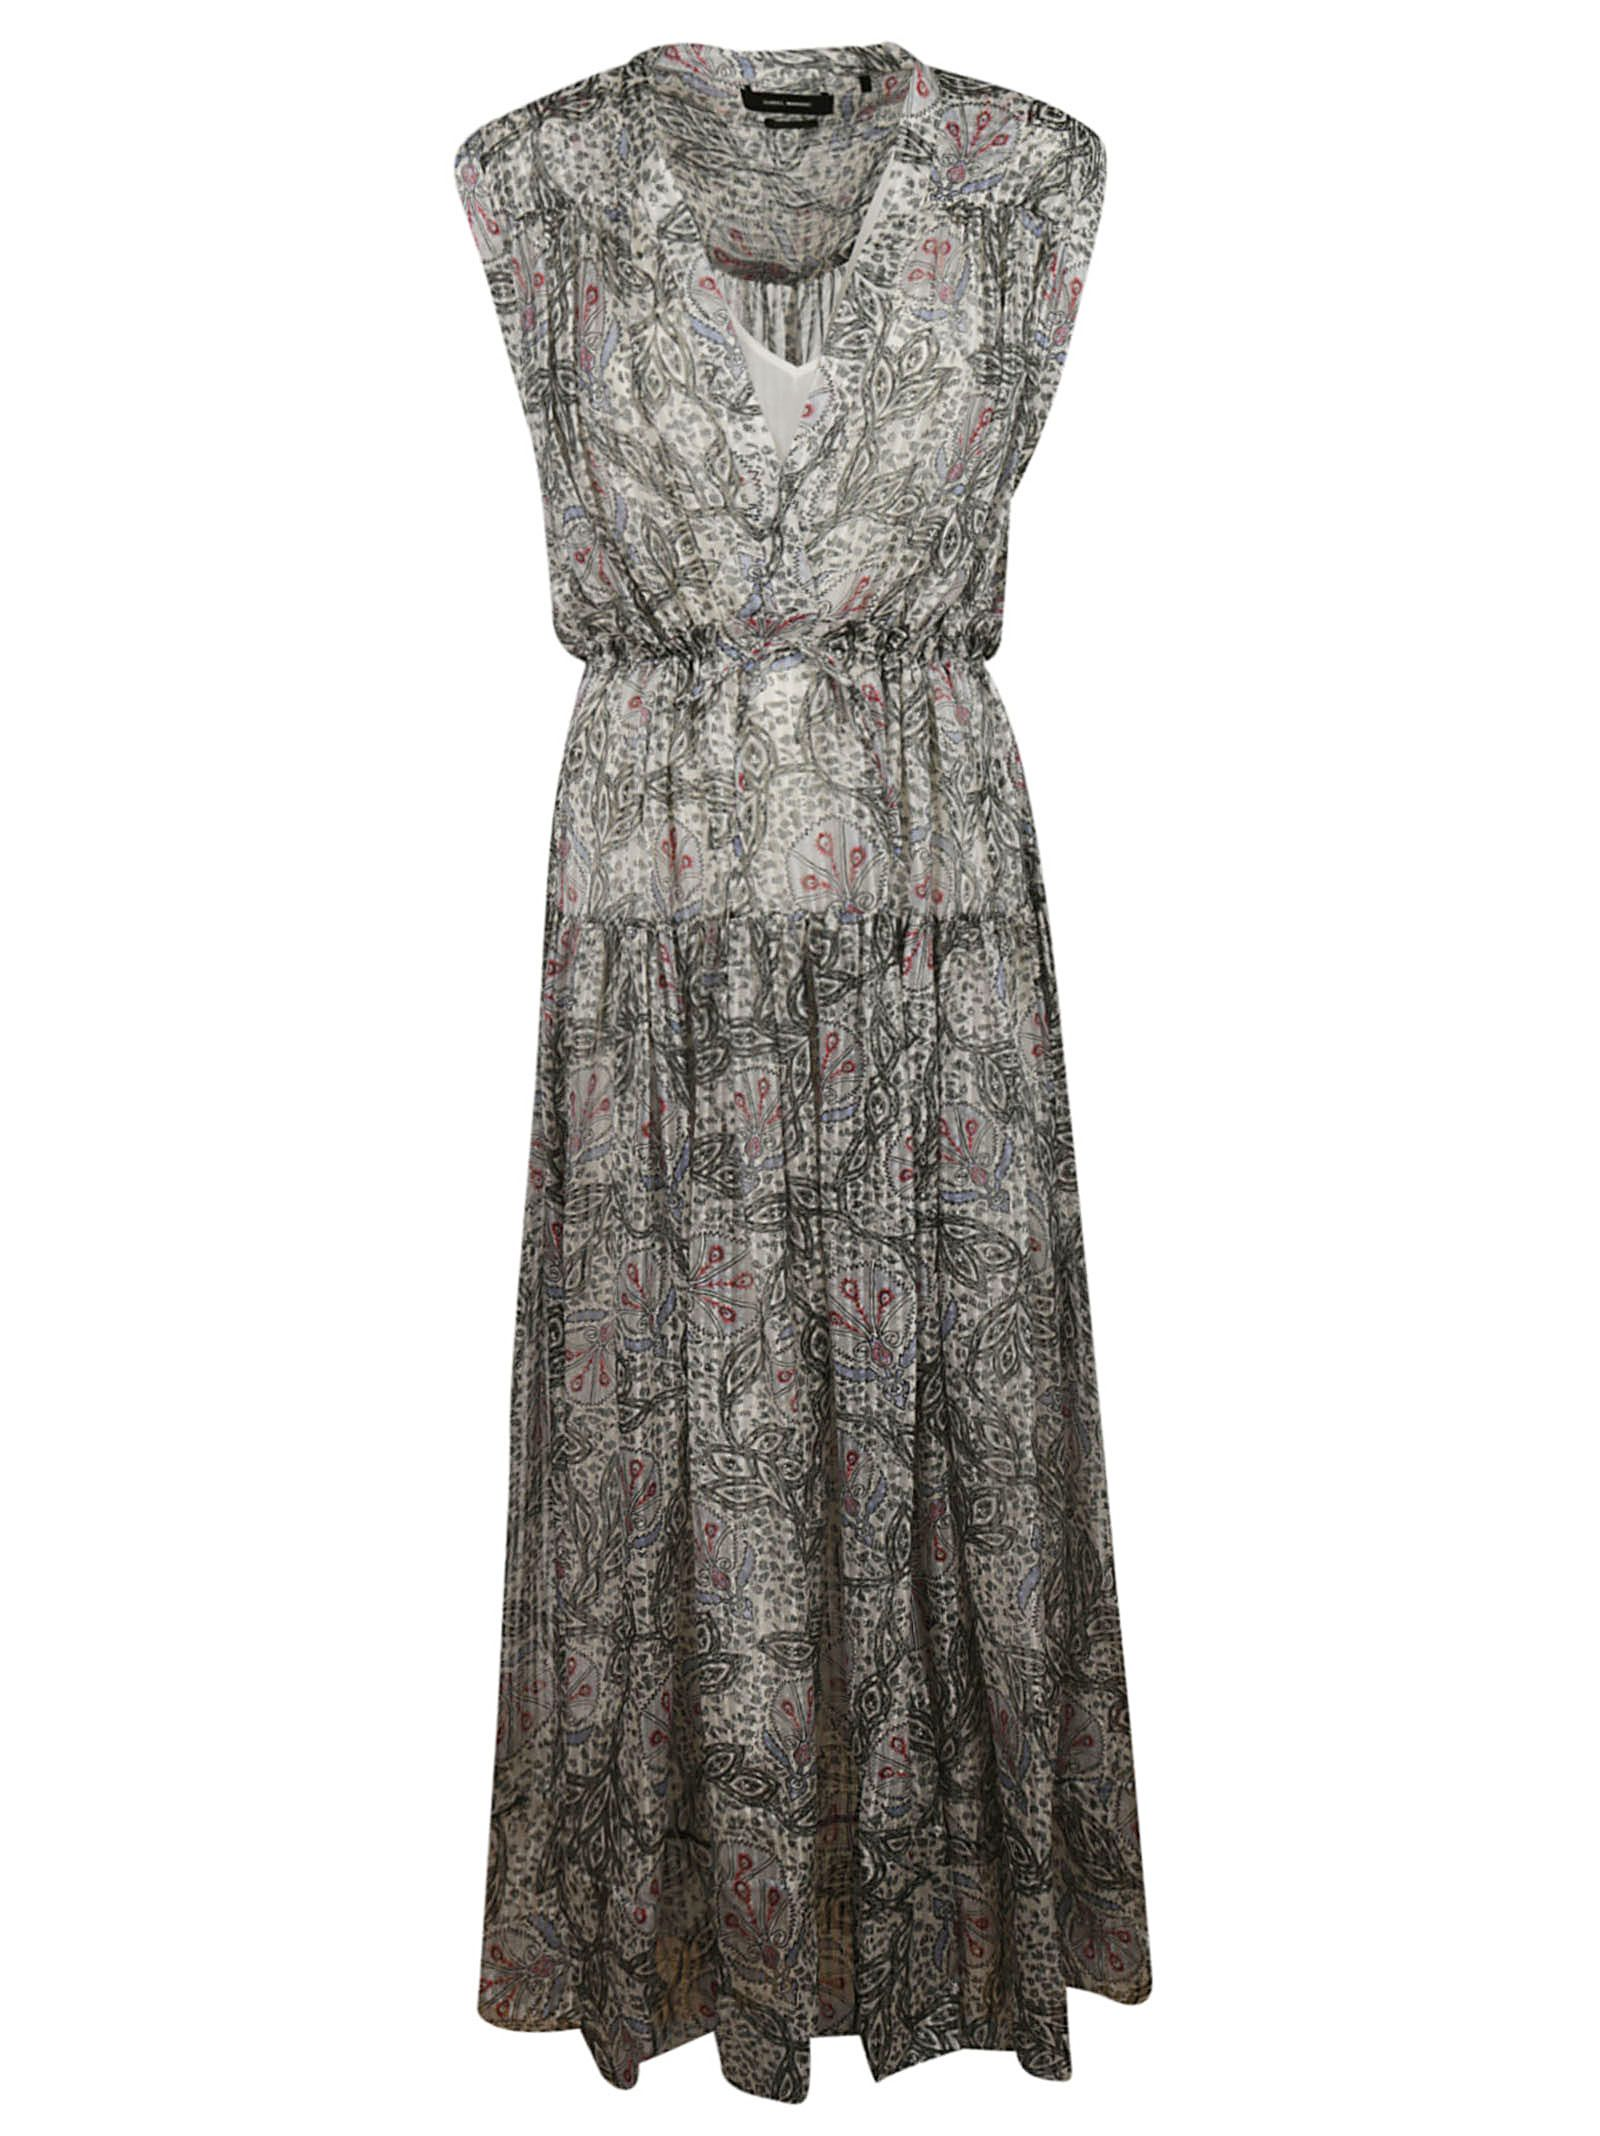 116dac4ee0c Isabel Marant Isabel Marant Printed All-over Long Dress - Beige ...